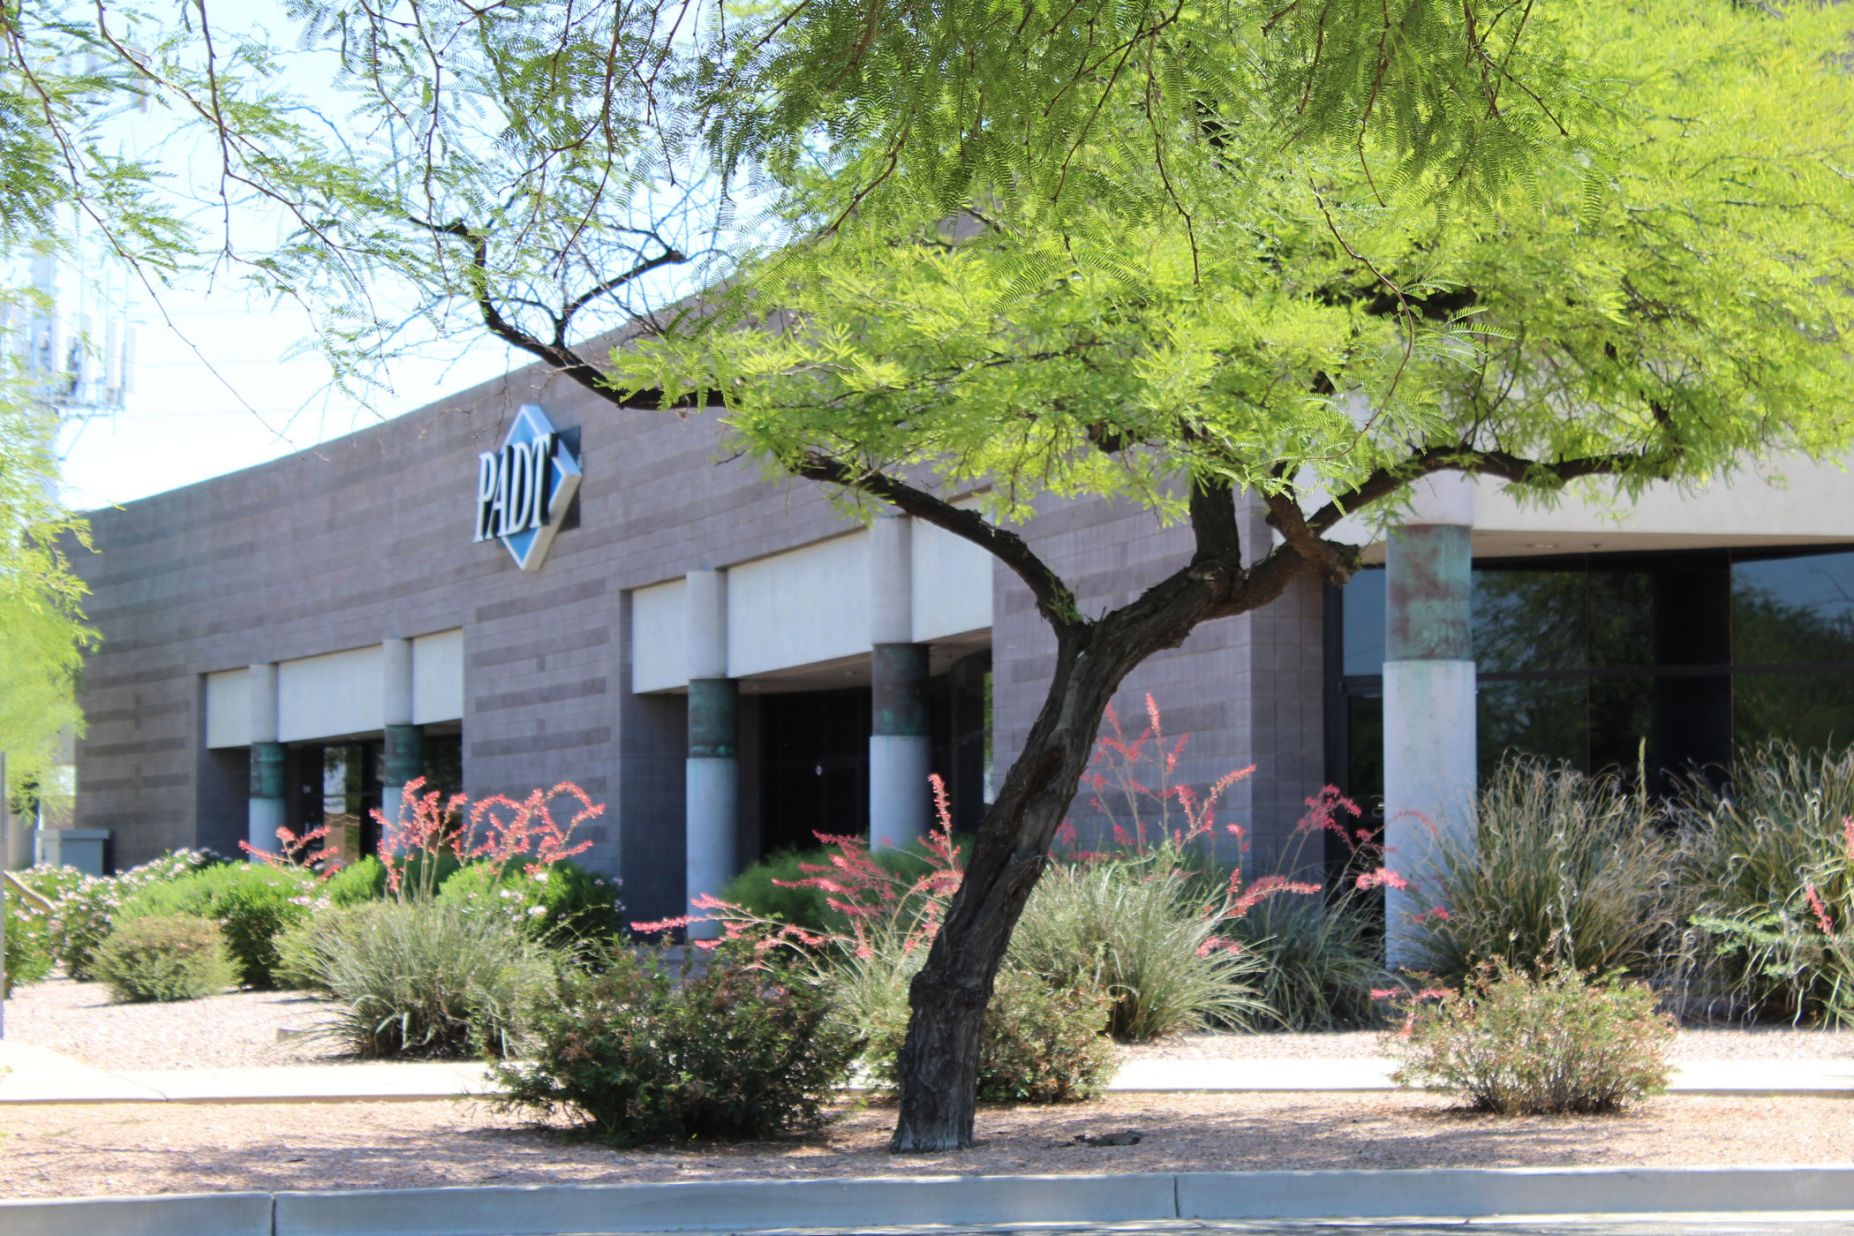 PADT is based in Tempe, Arizona